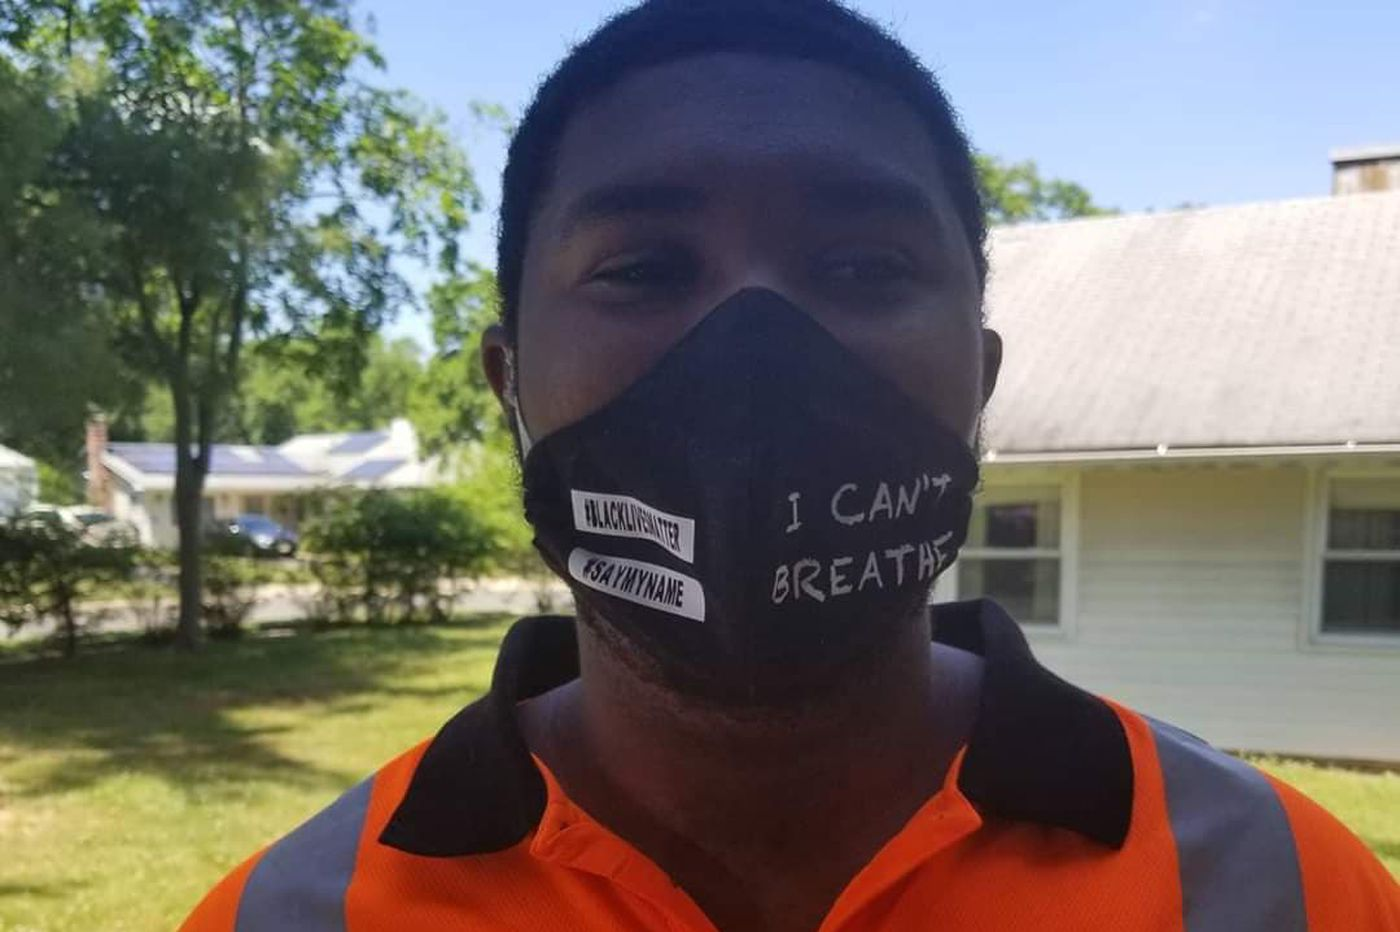 A South Jersey Wawa employee was told to take off his Black Lives Matter mask. He quit, and Wawa is examining its uniform policies.